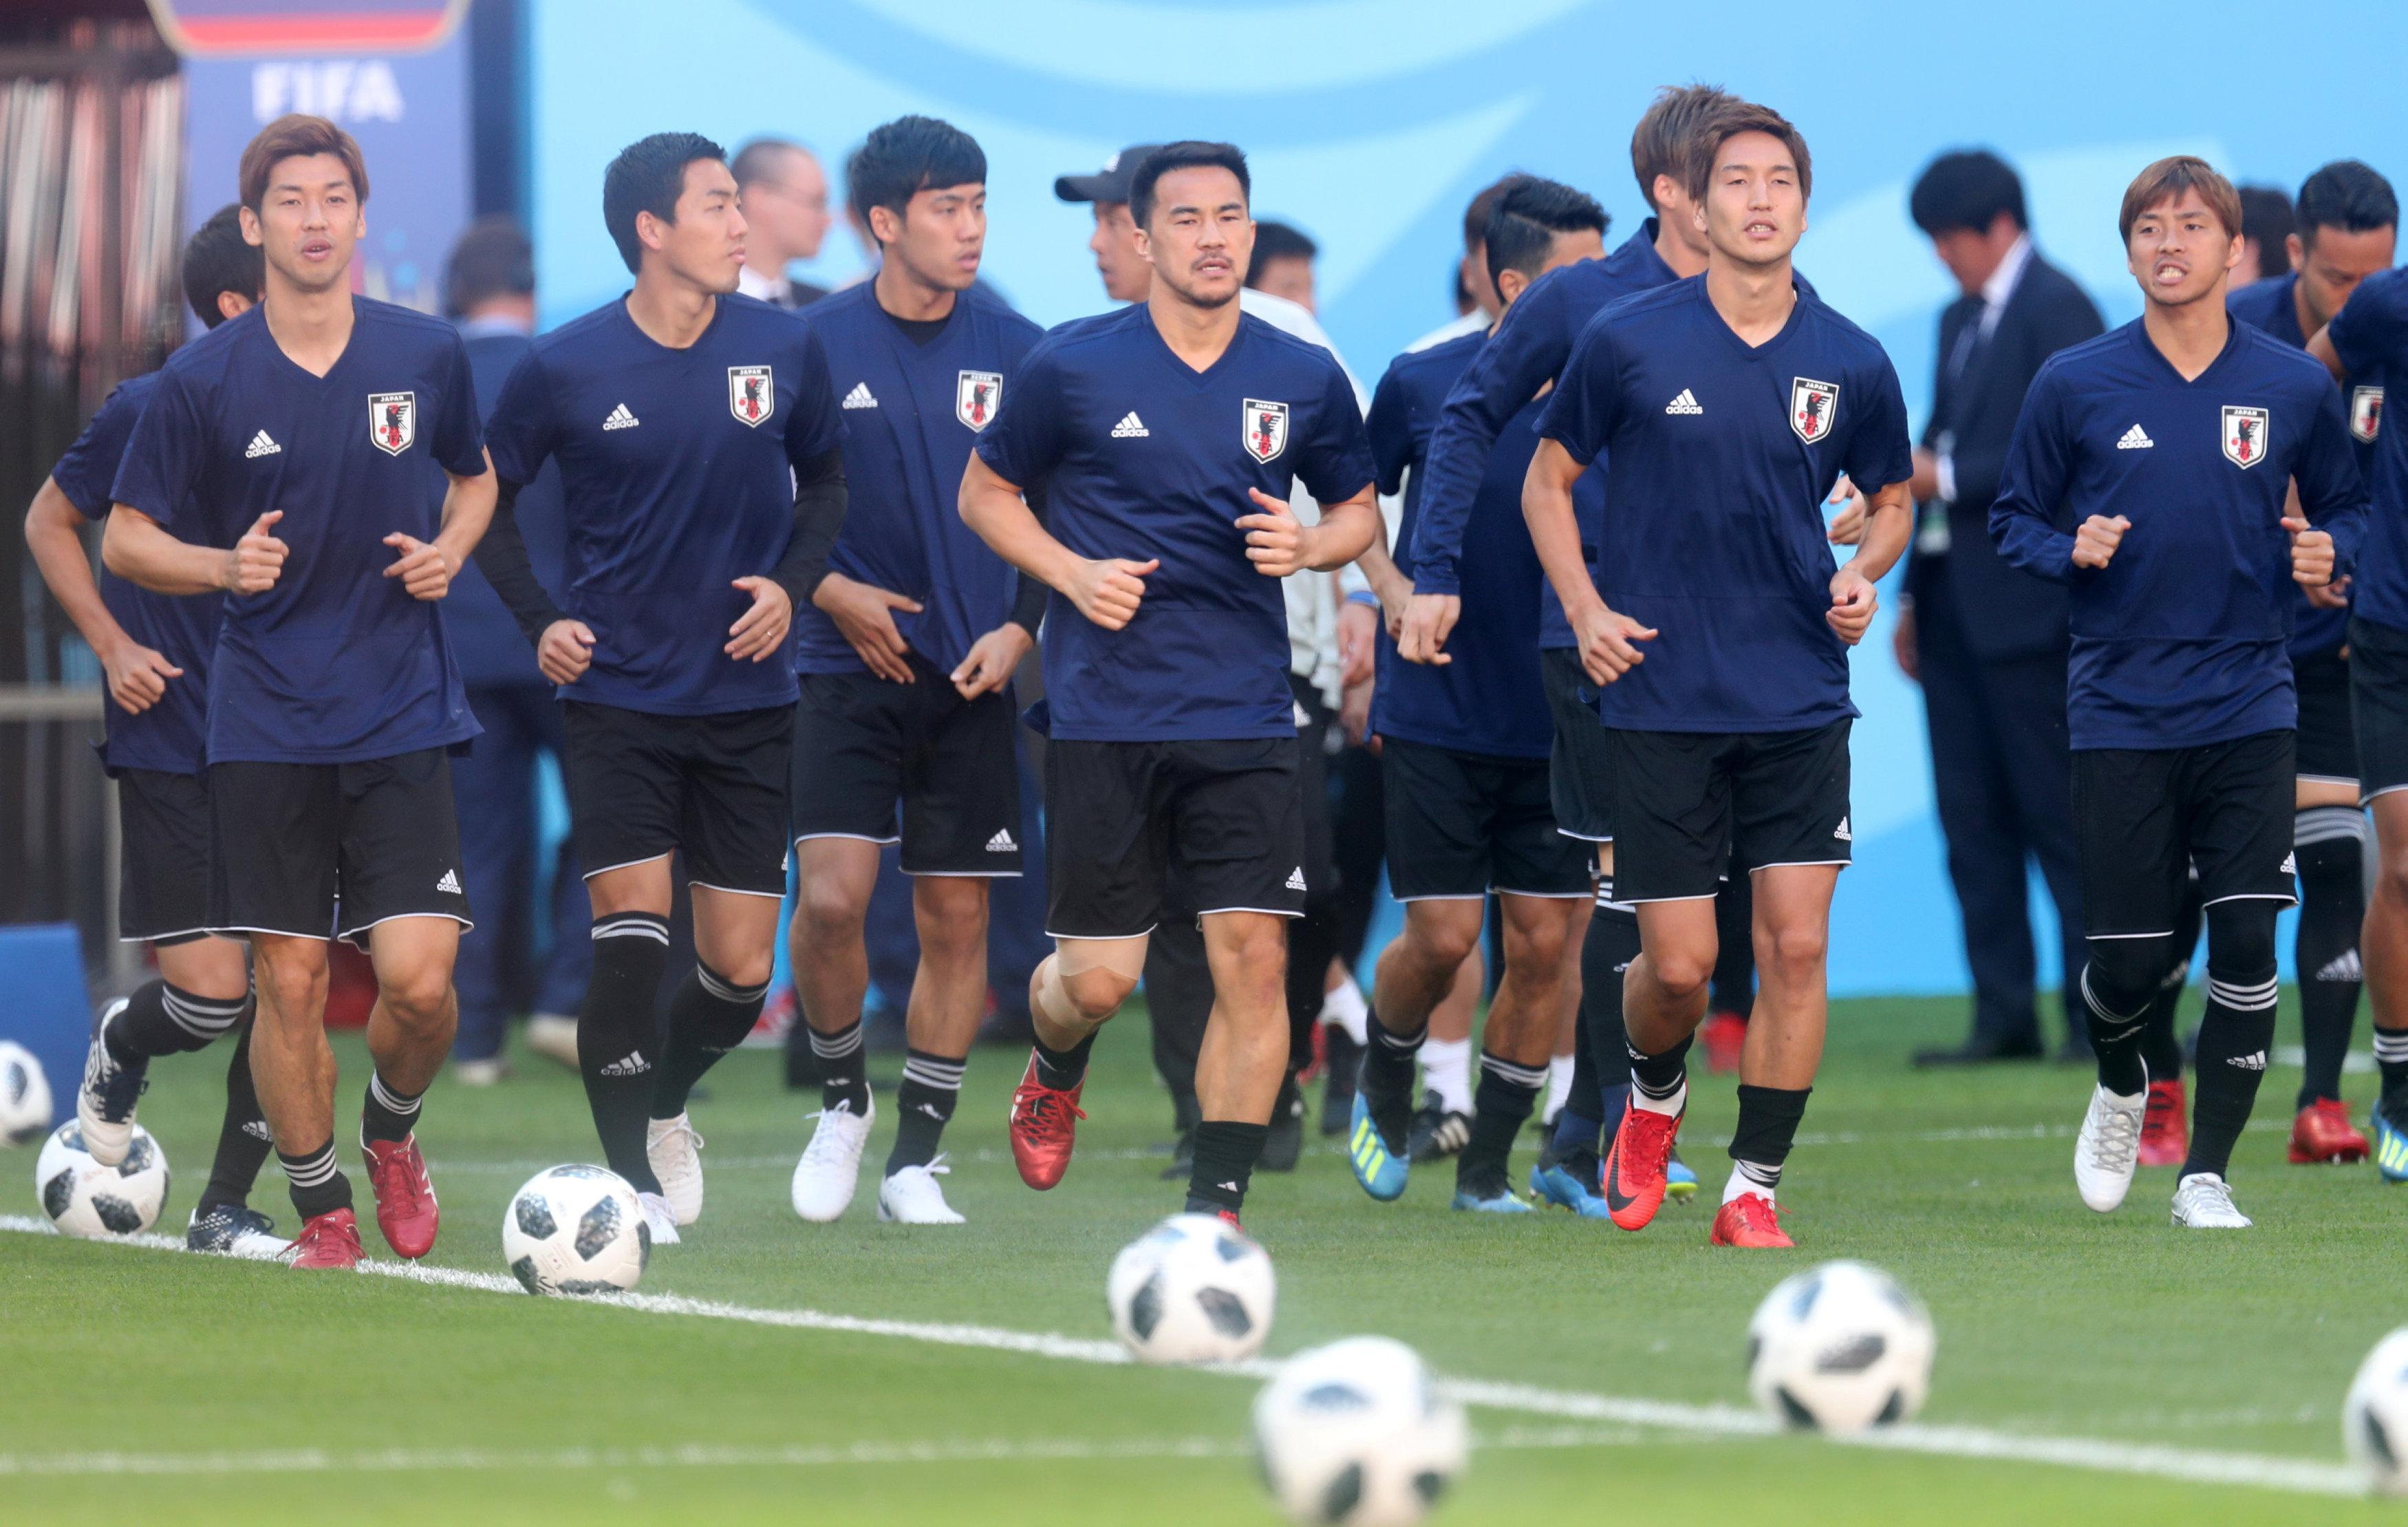 Soccer Football - World Cup - Japan Training - Mordovia Arena, Saransk, Russia - June 18, 2018   Japan's Shinji Okazaki with team mates during training   Ricardo Moraes